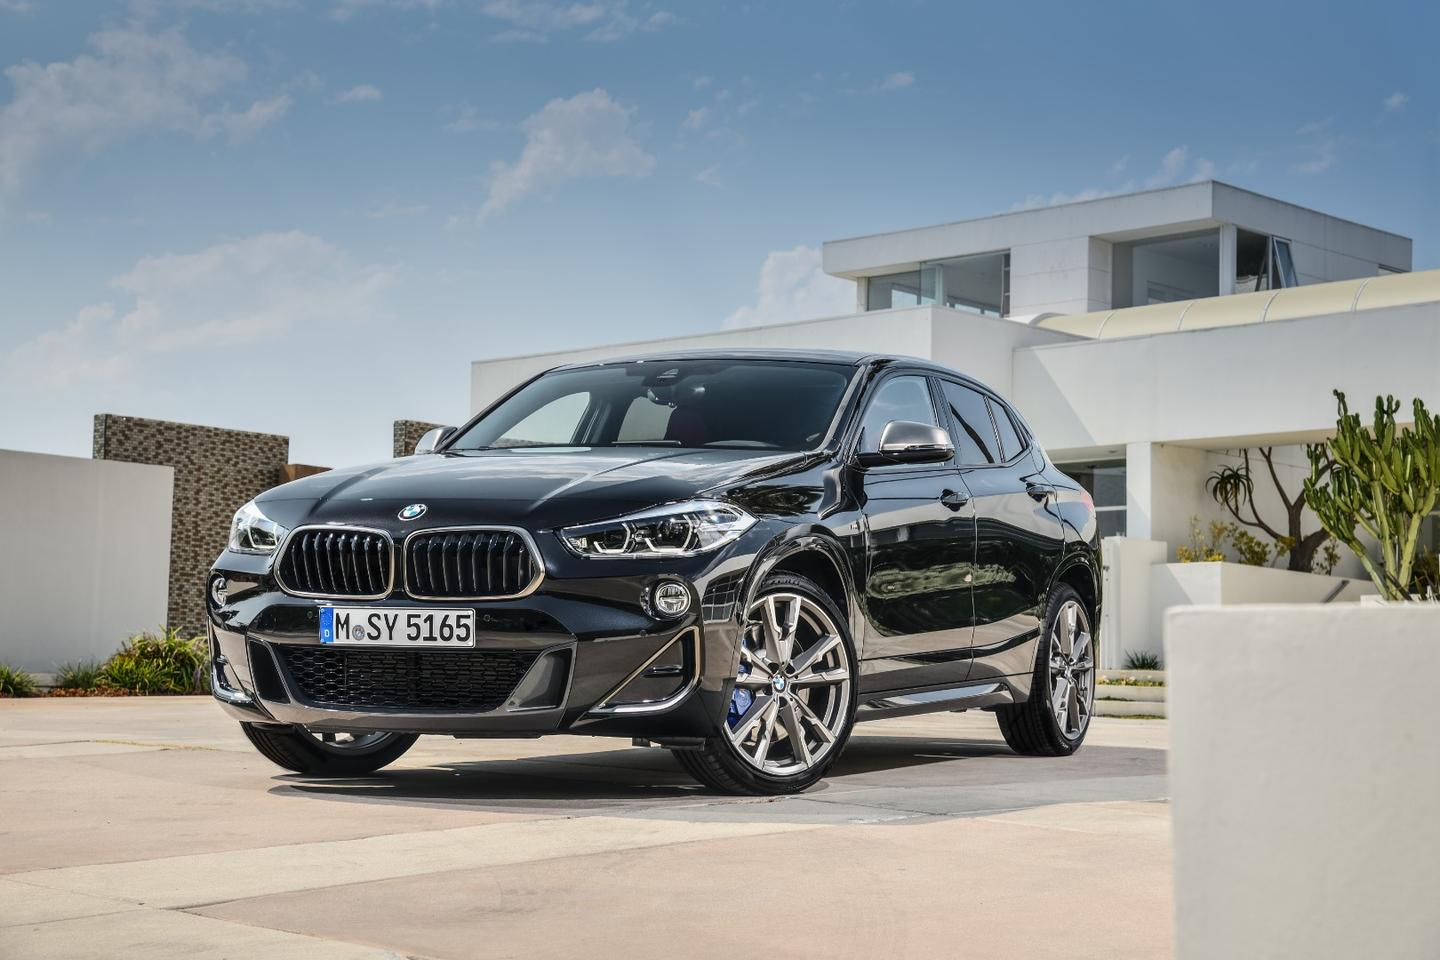 The M35i's two-stage adaptive suspension has been tweaked to match its M Sport bodykit